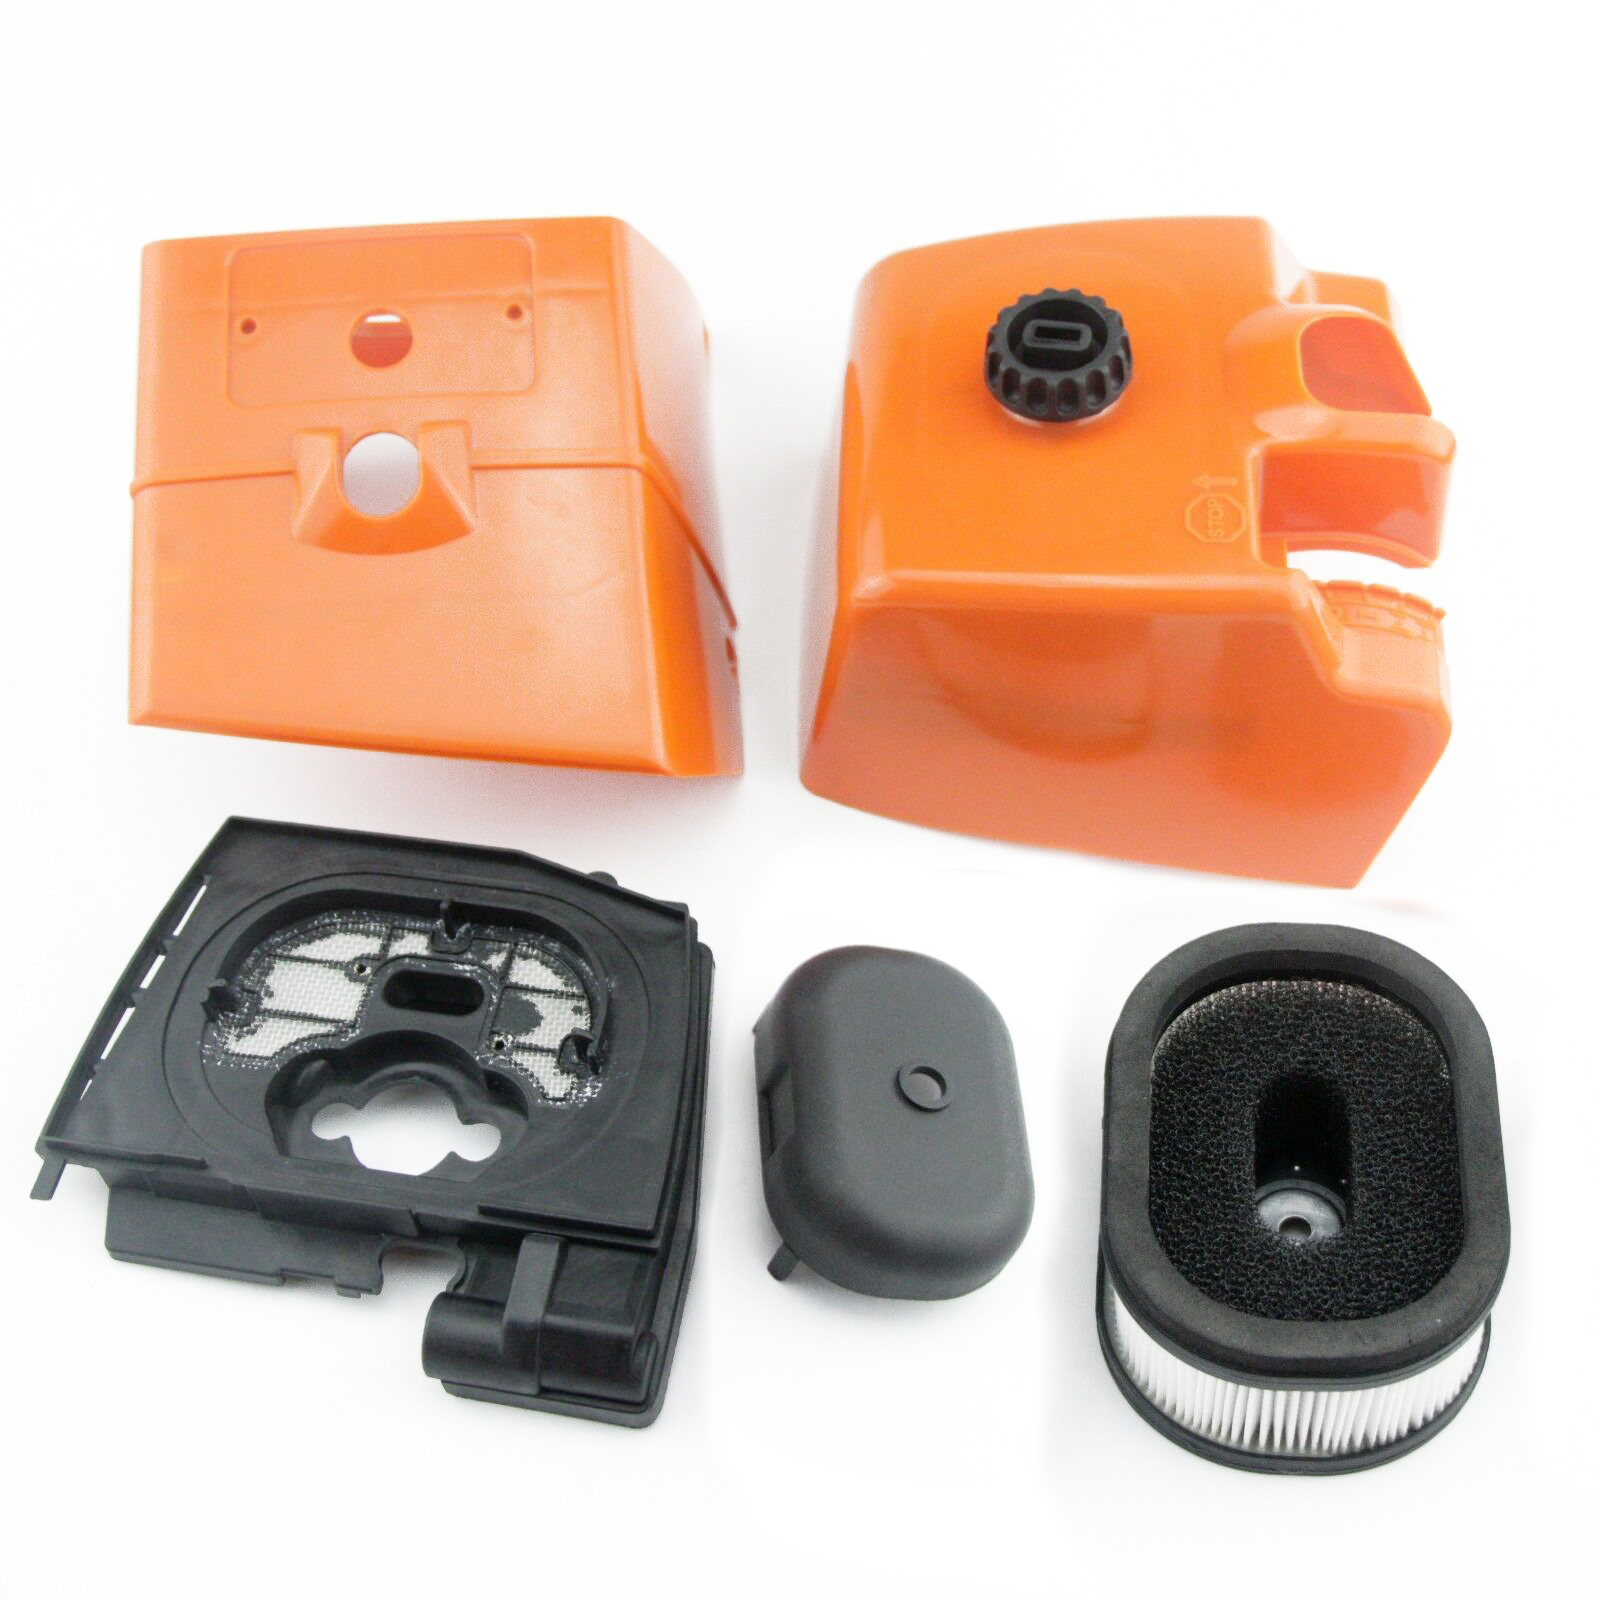 Chain Saw Fuel Tank Engine Air Filter Cover Baffle Kit Replacements For Stihl 046 MS460 Garden Power Tools Parts